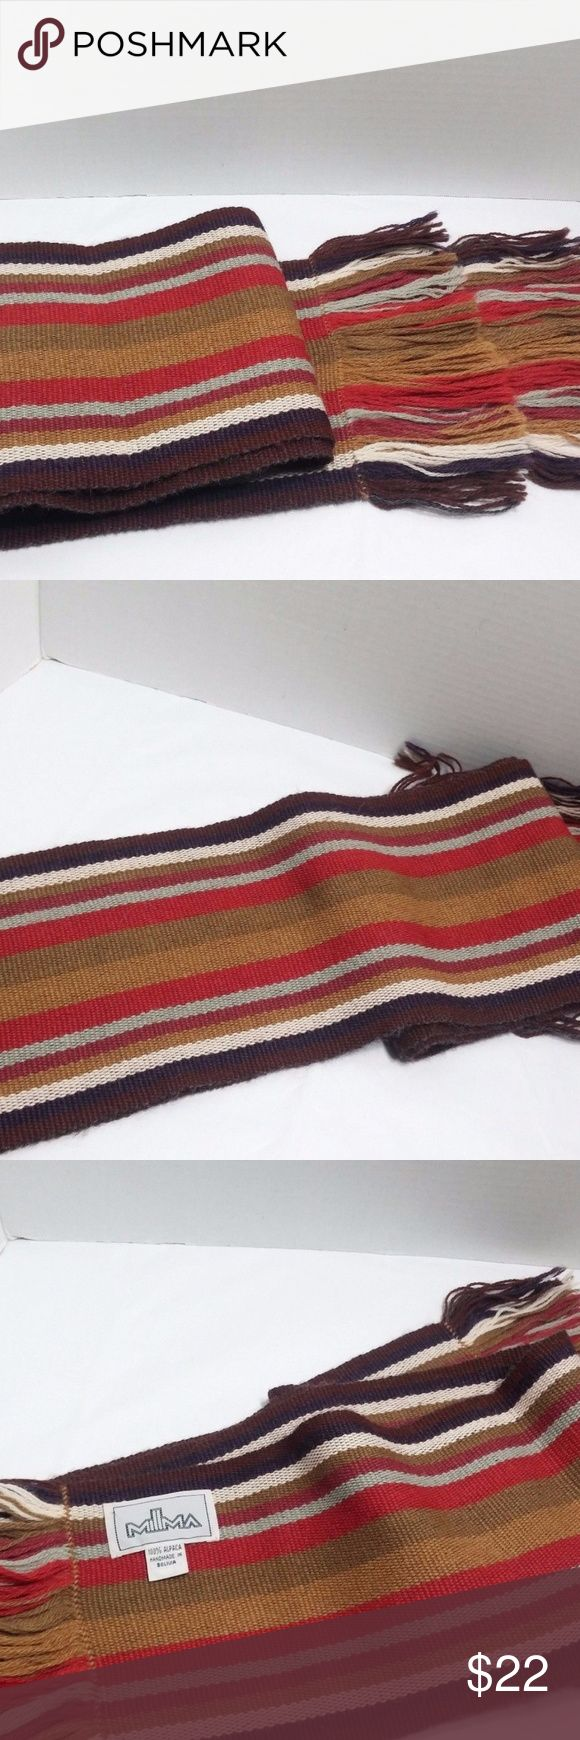 """Millma Alpaca Scarf Handmade in Bolivia Striped Millma Alpaca Scarf Handmade in Bolivia Striped Fringed Men's Women's Unisex   Good, clean condition   6.5"""" wide and 68"""" long Millma Accessories Scarves & Wraps"""